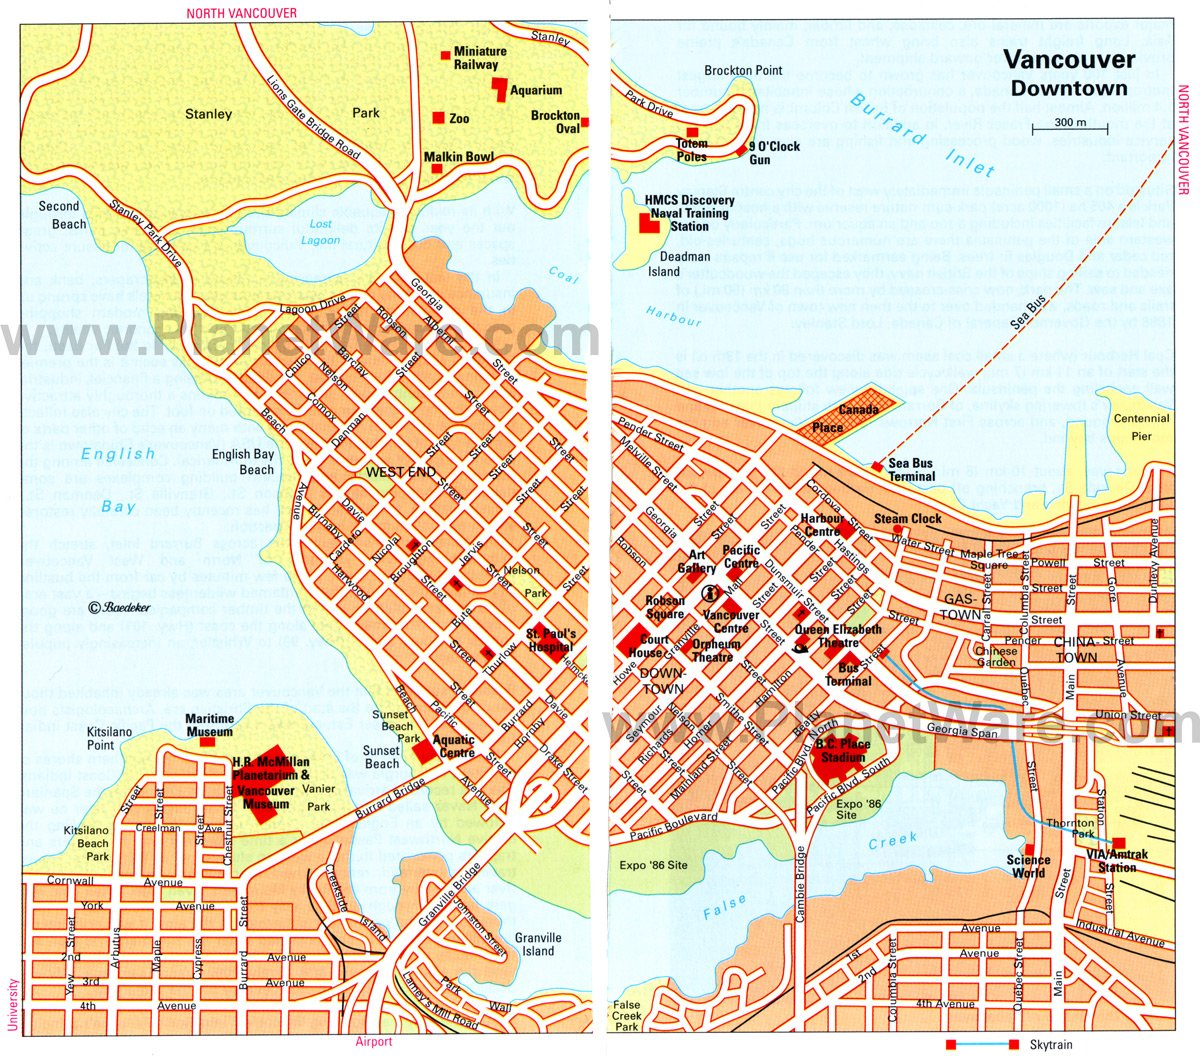 15 TopRated Tourist Attractions in Vancouver – Seattle Tourist Attractions Map